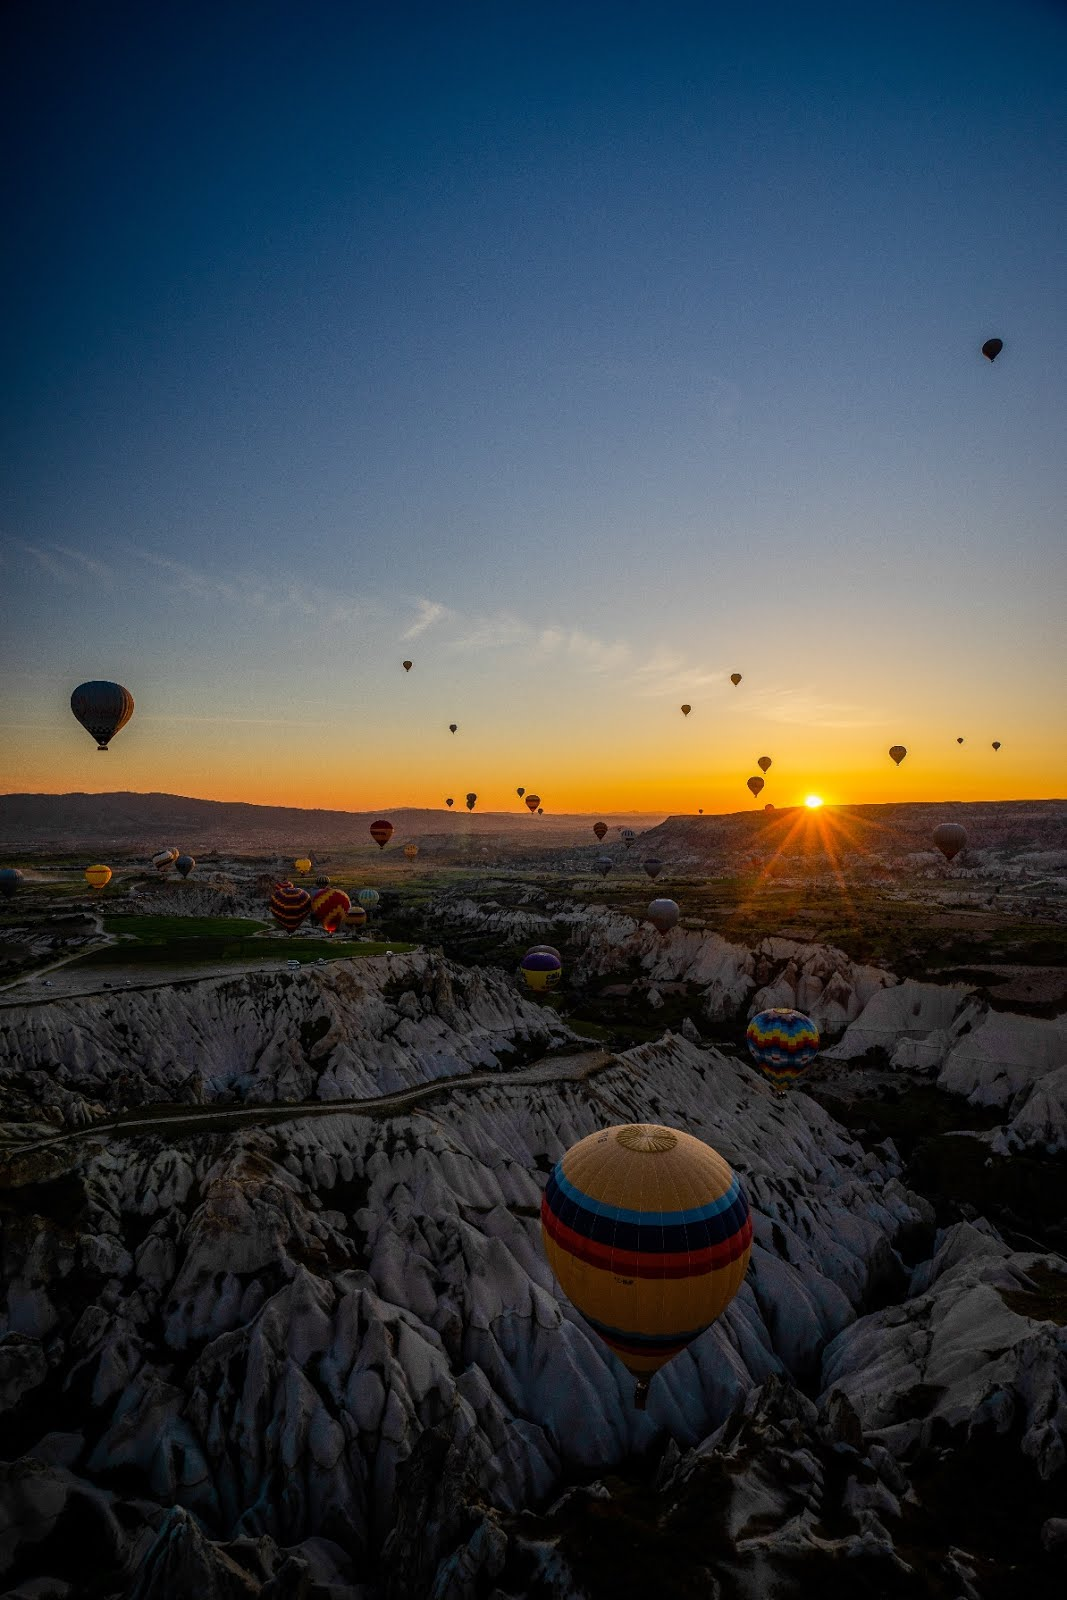 Hot Balloon ride in Cappadocia, Turkey